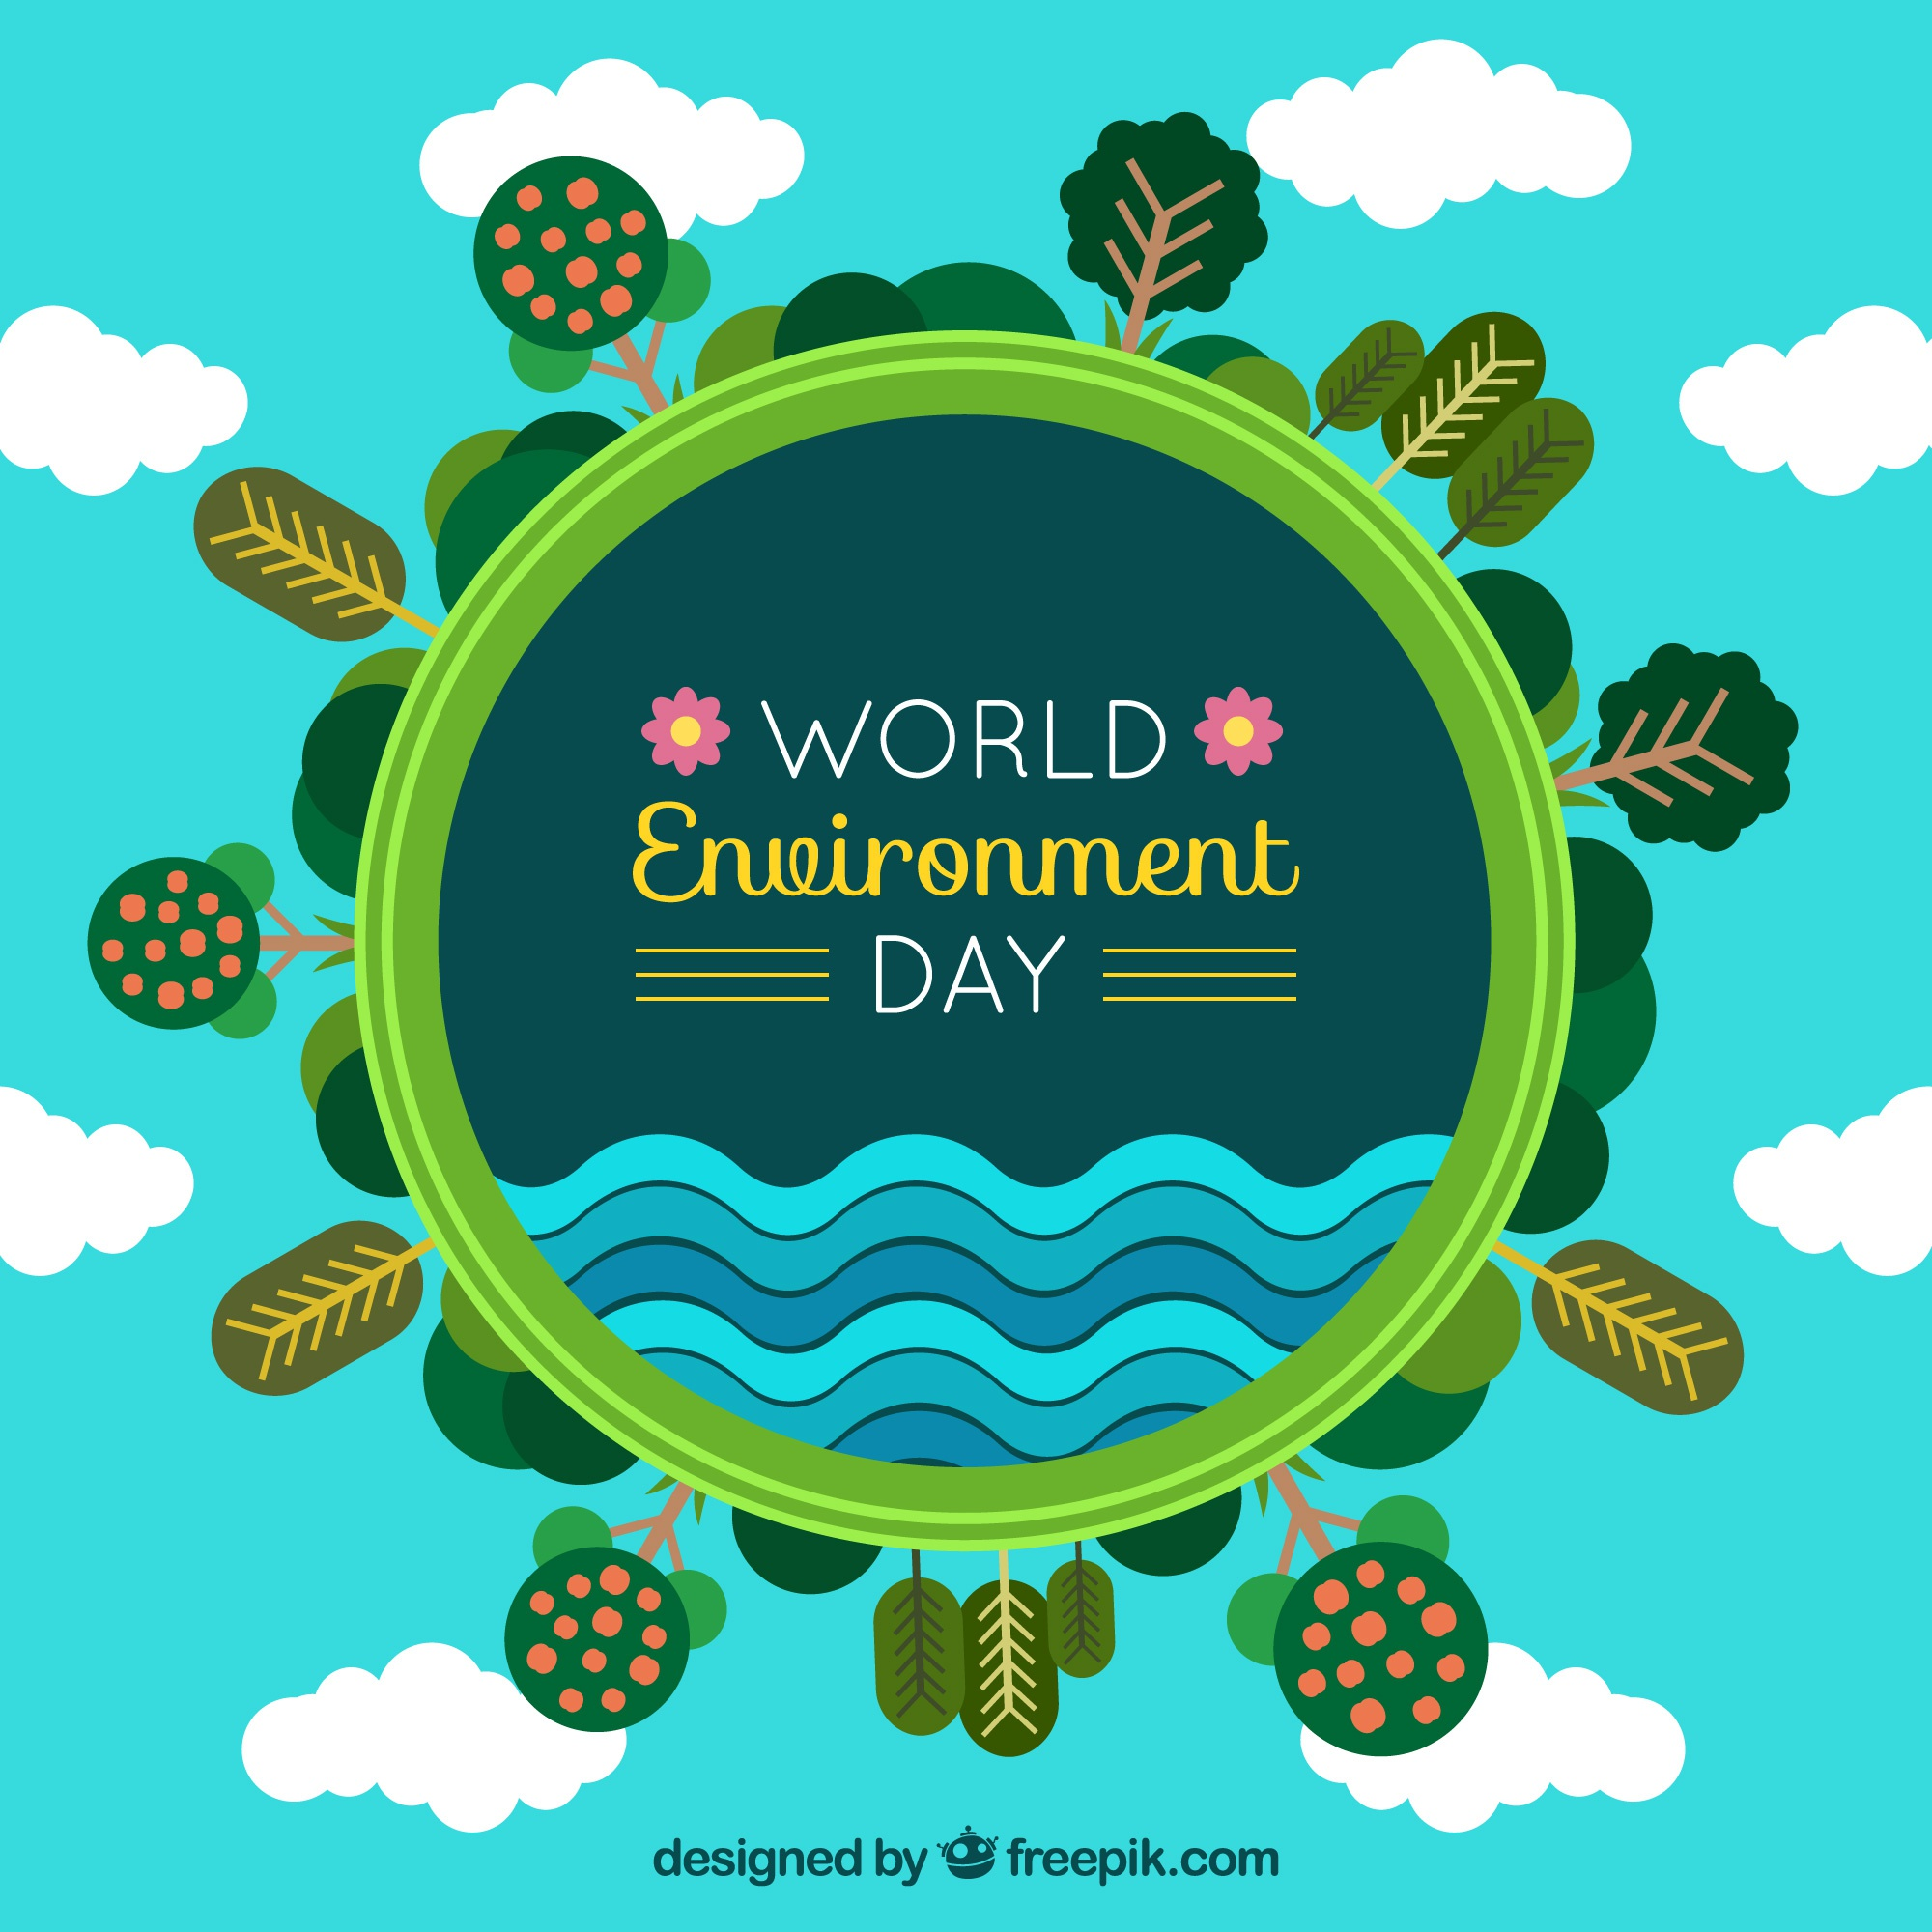 World environment day background with trees and clouds